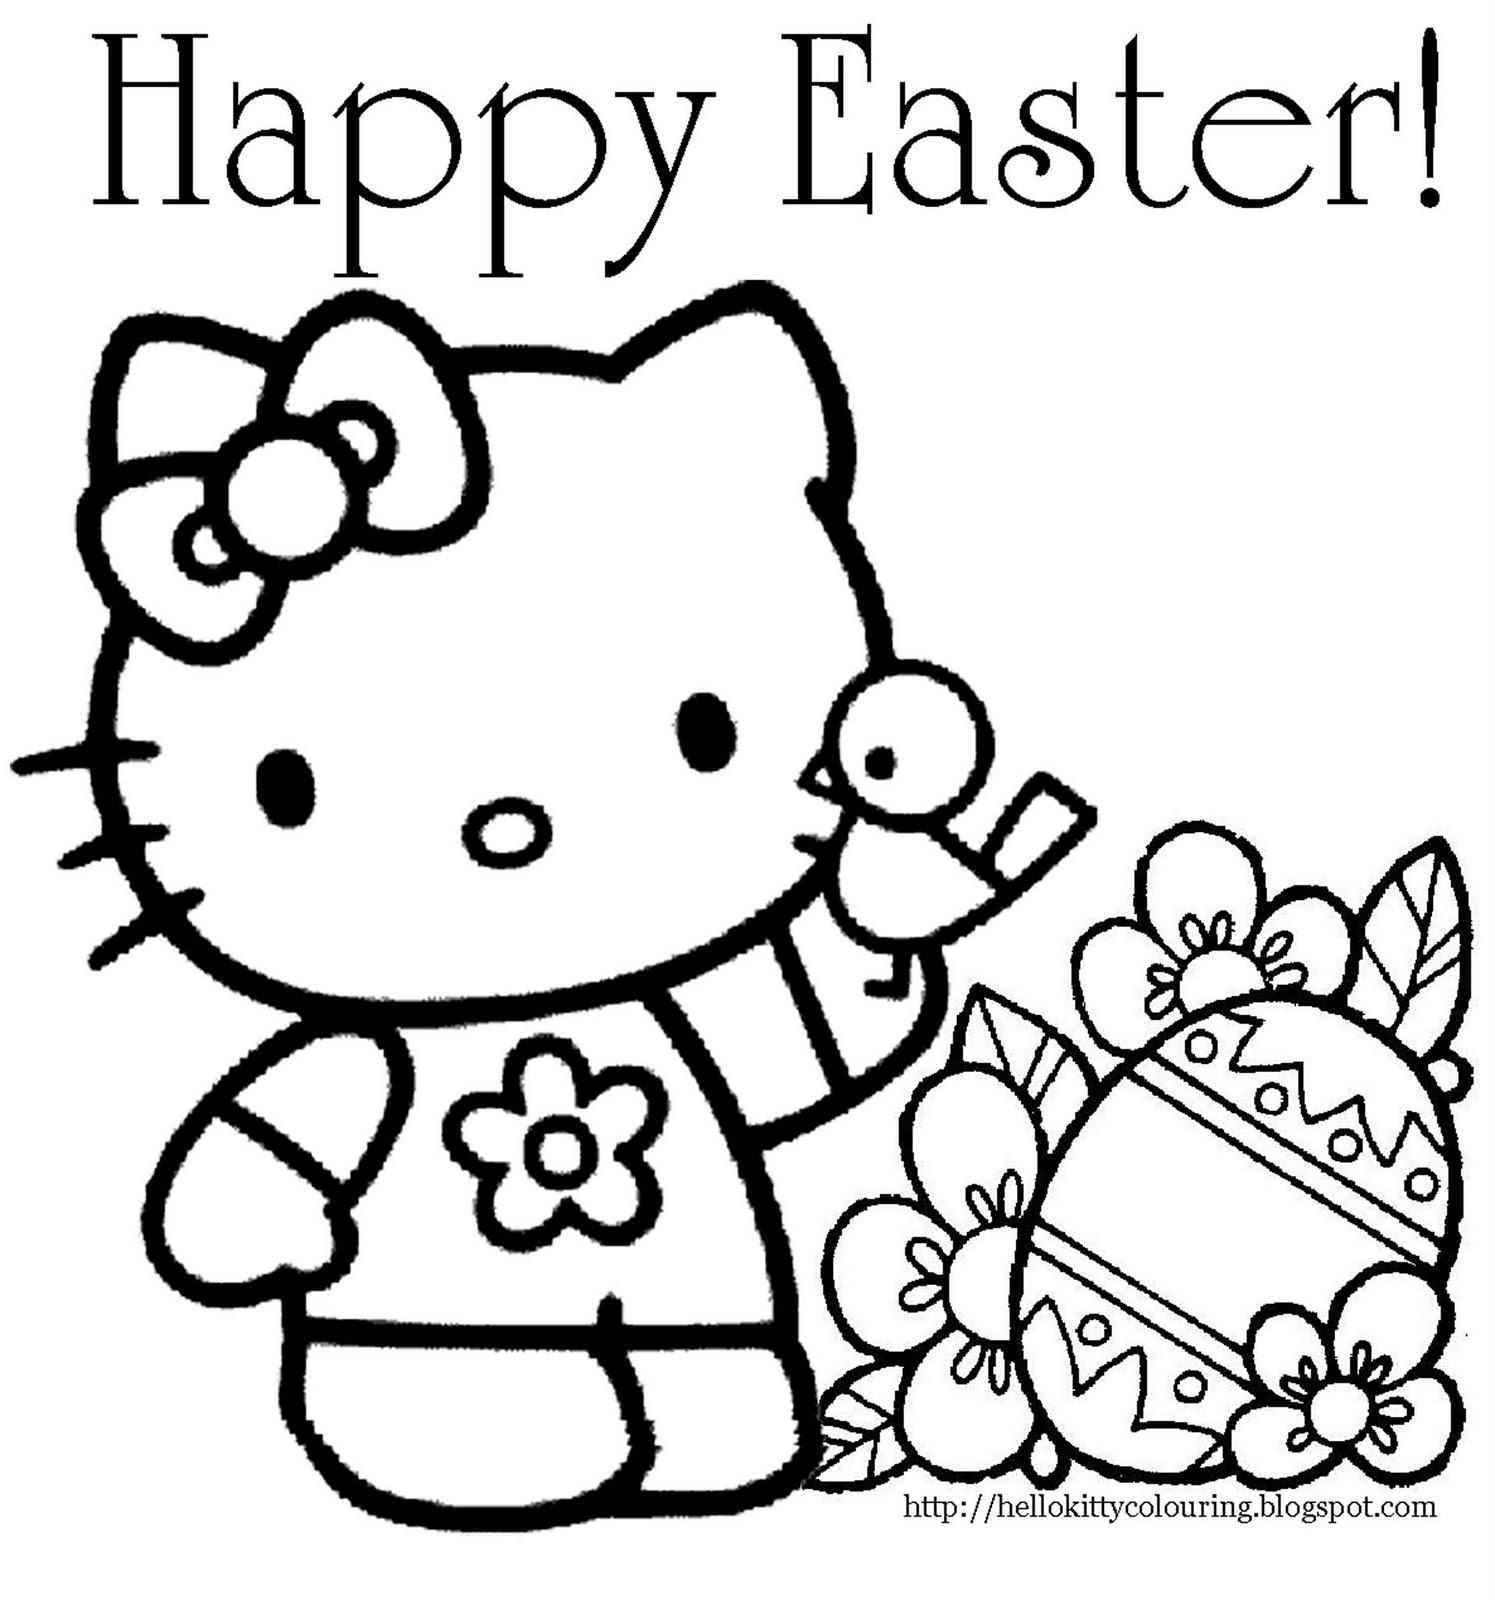 Pudgy Bunny's Hello Kitty Coloring Pages - hello kitty coloring pages print